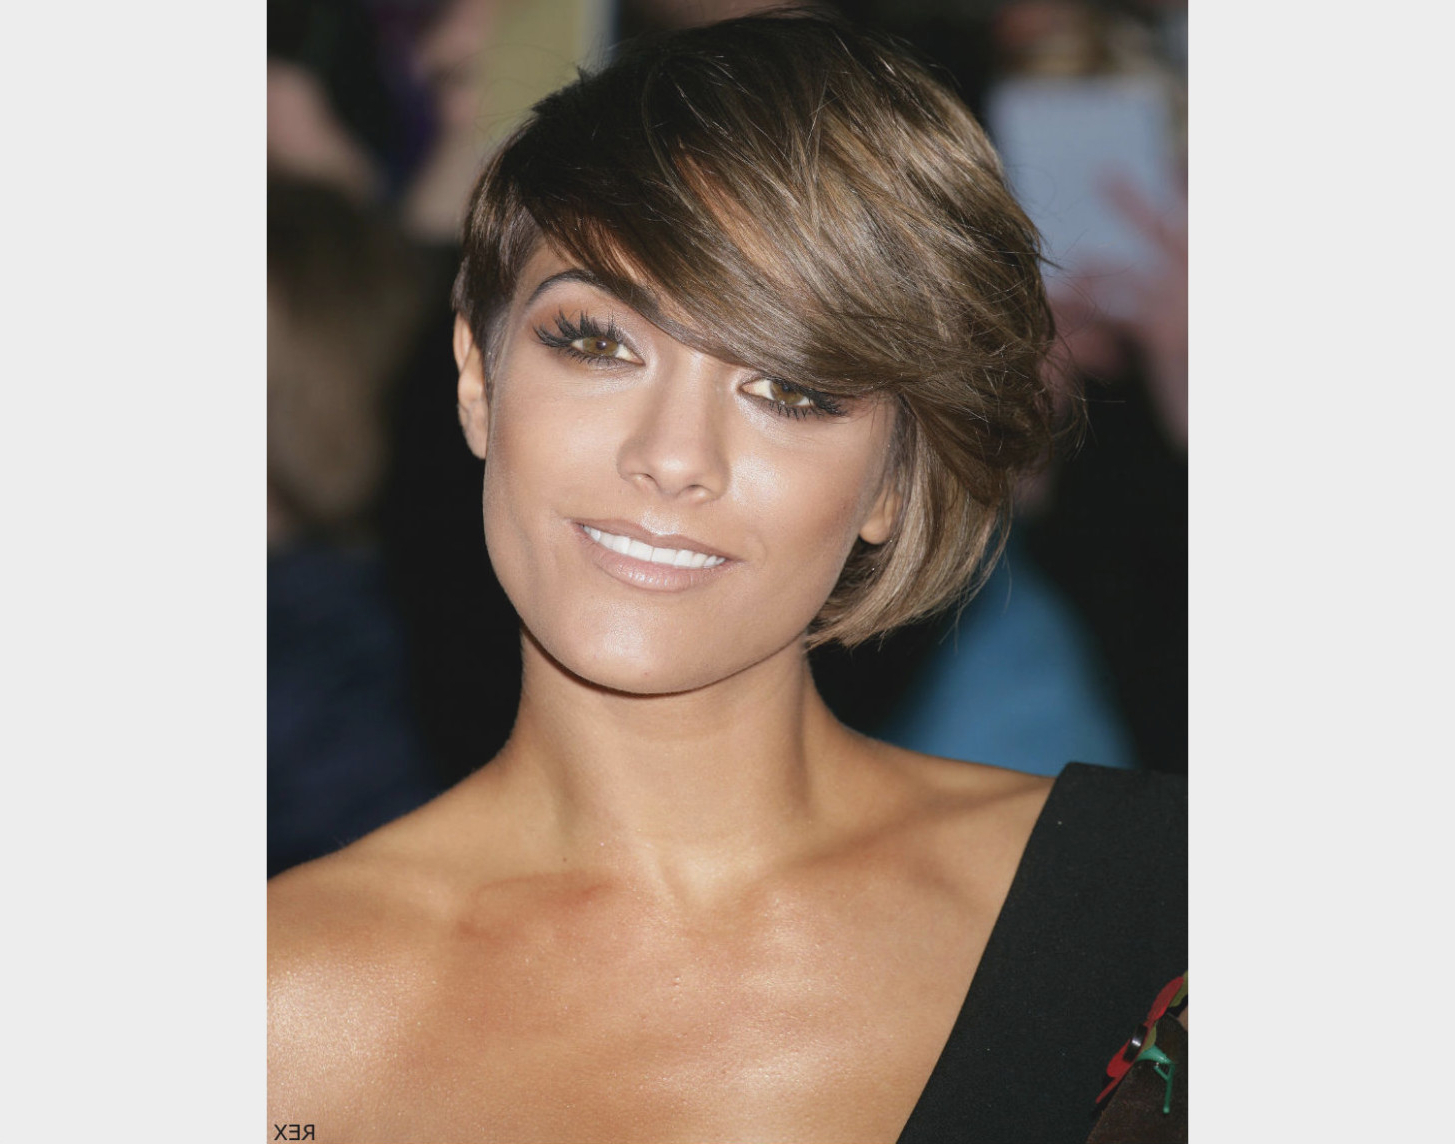 Short Hairstyles Oval Face Fine Hair – Hairstyle For Women In Short Haircuts For Fine Hair Oval Face (View 23 of 25)